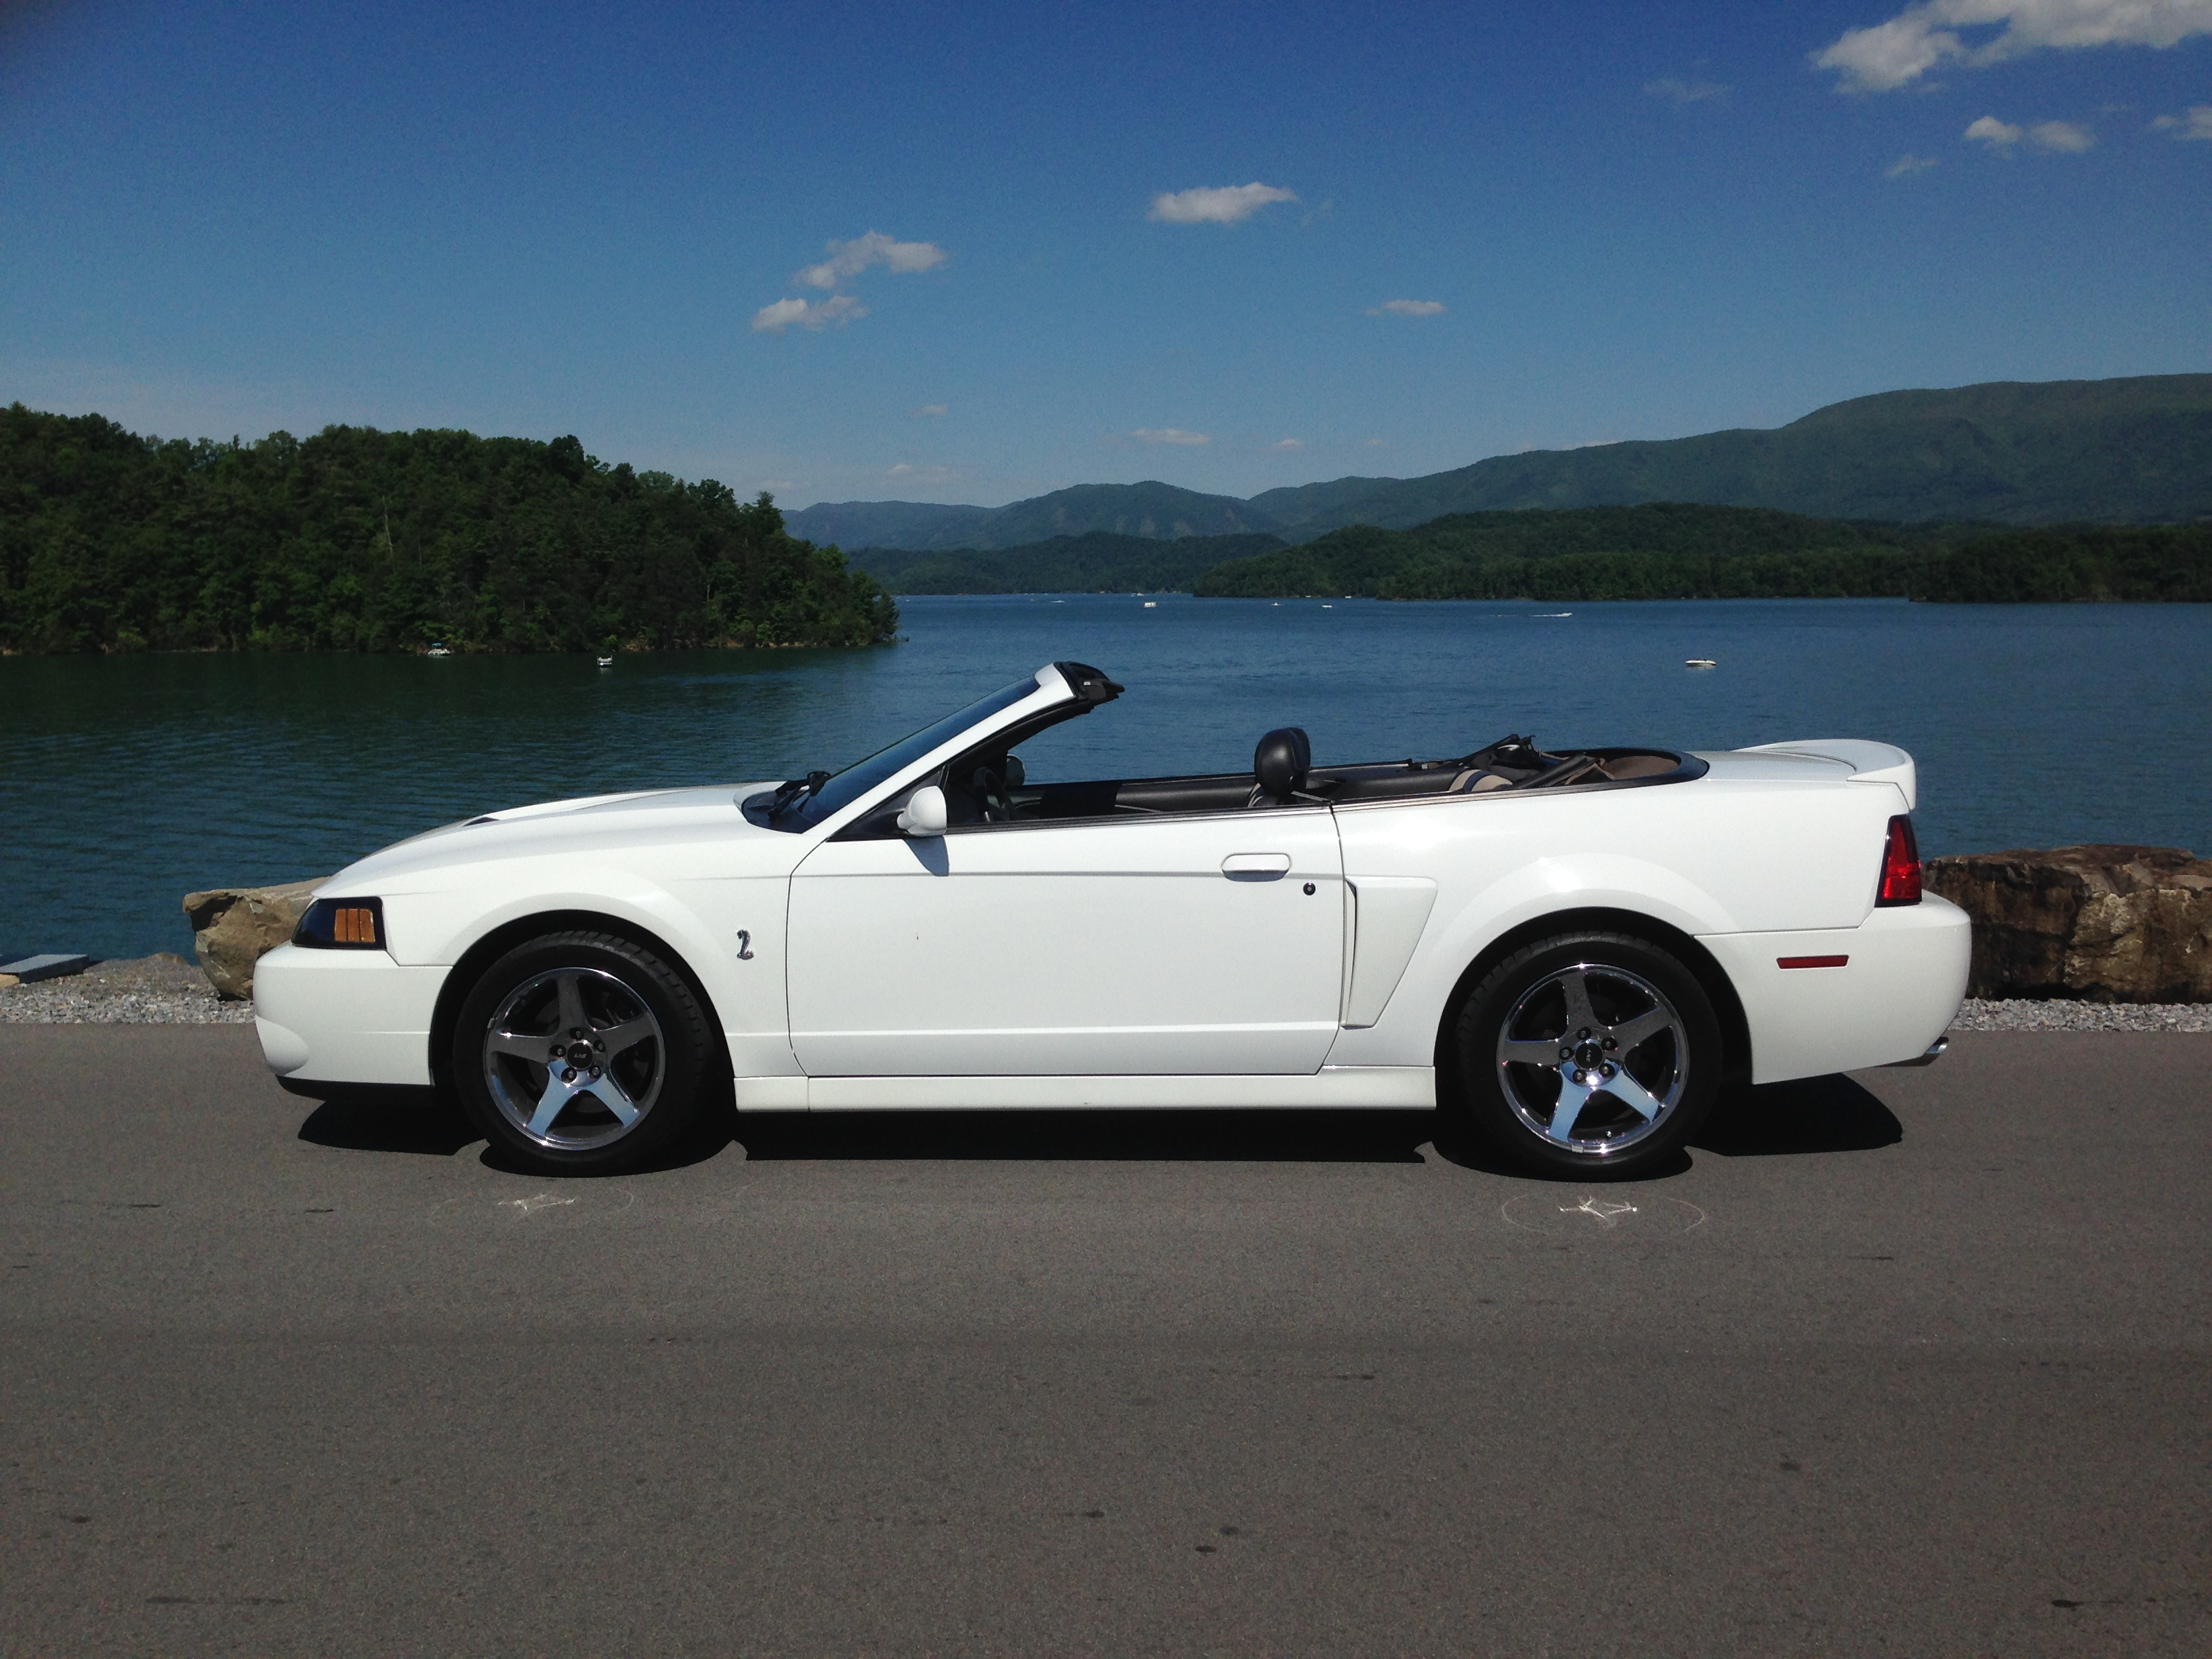 2003 Ford Mustang Cobra Convertible at South Holston Dam